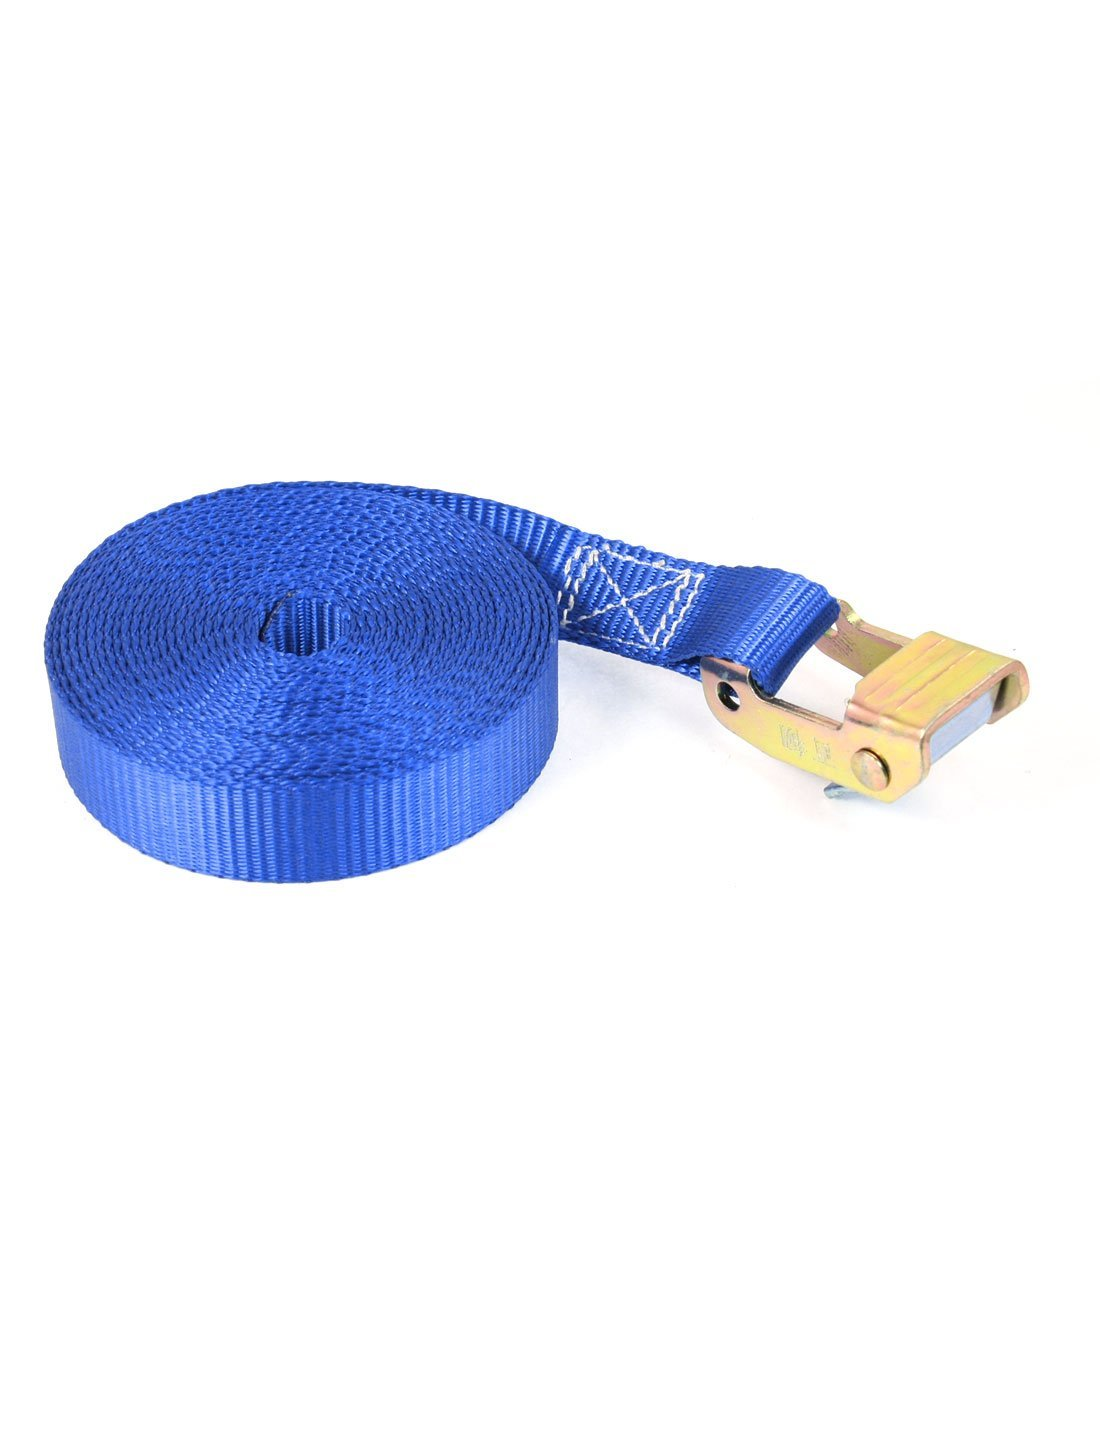 Paglalakbay Luggage Binding Metal Cam Buckle Tie Down Strap 5M 16ft Blue